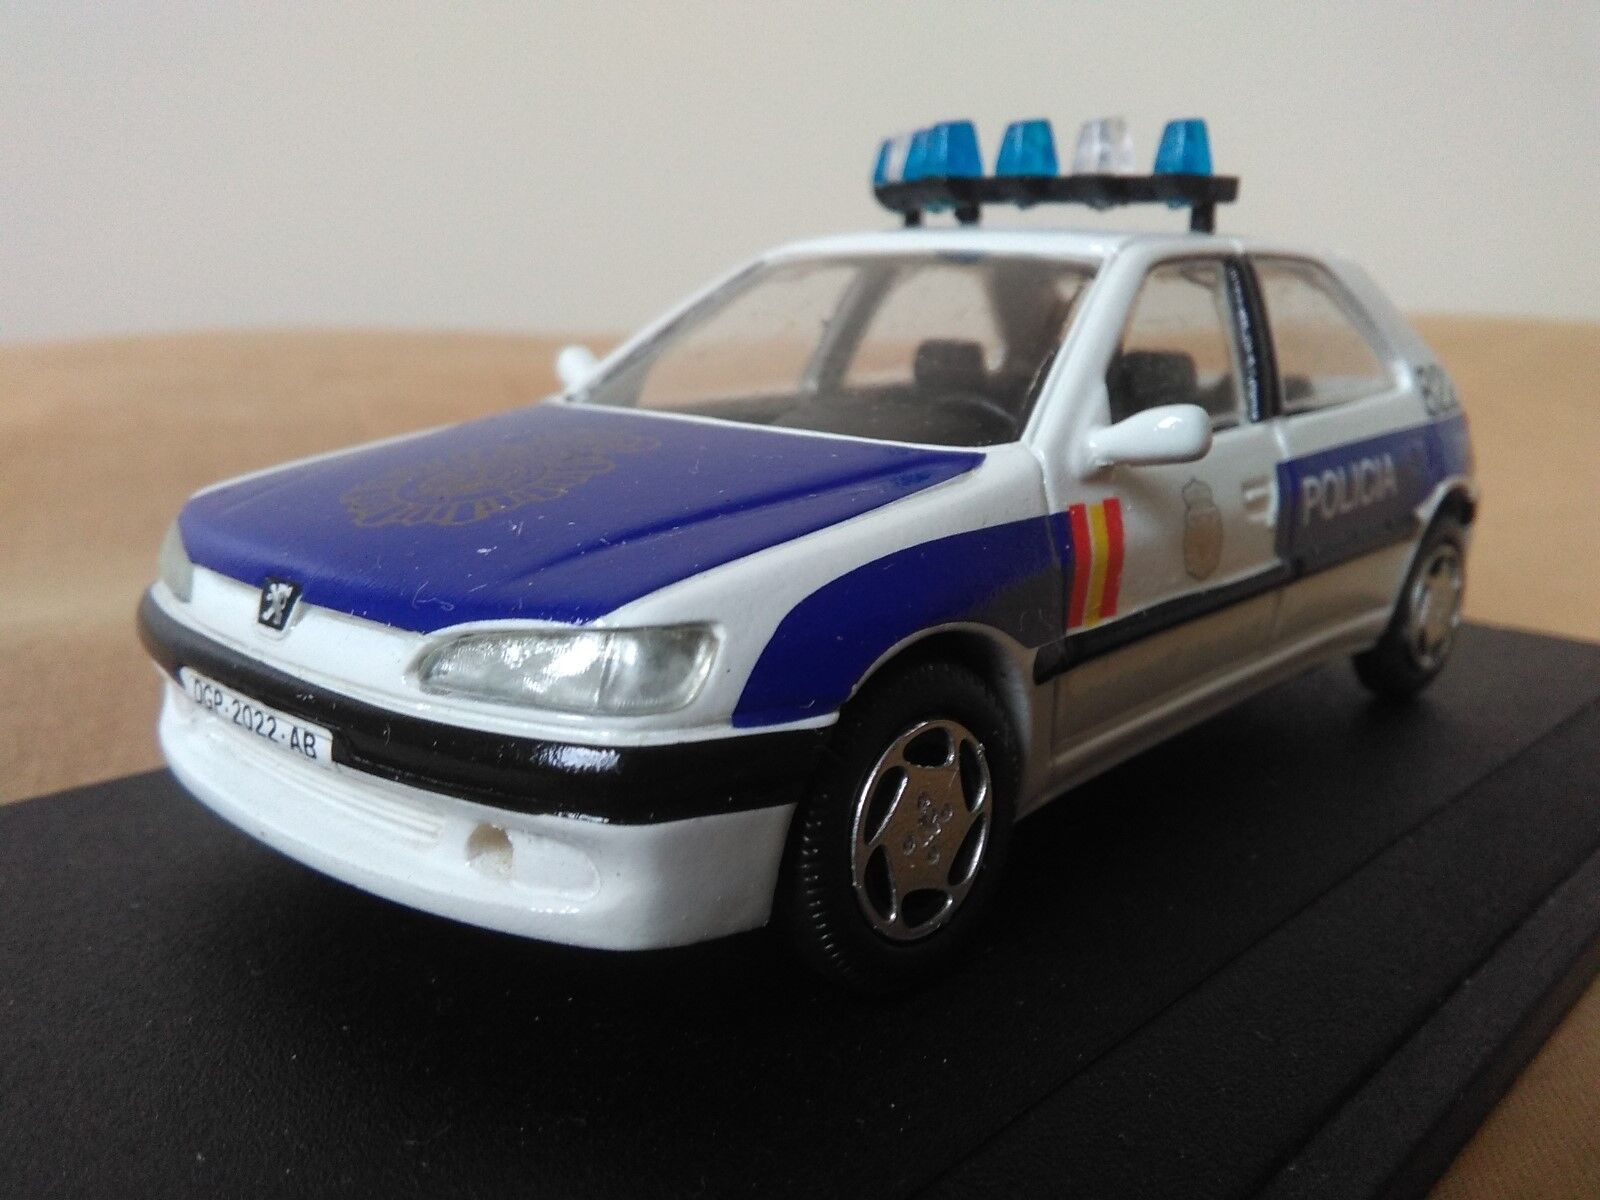 Old miniature 1 43 scale Carr rs020 peugeot 306 1999 091 national police